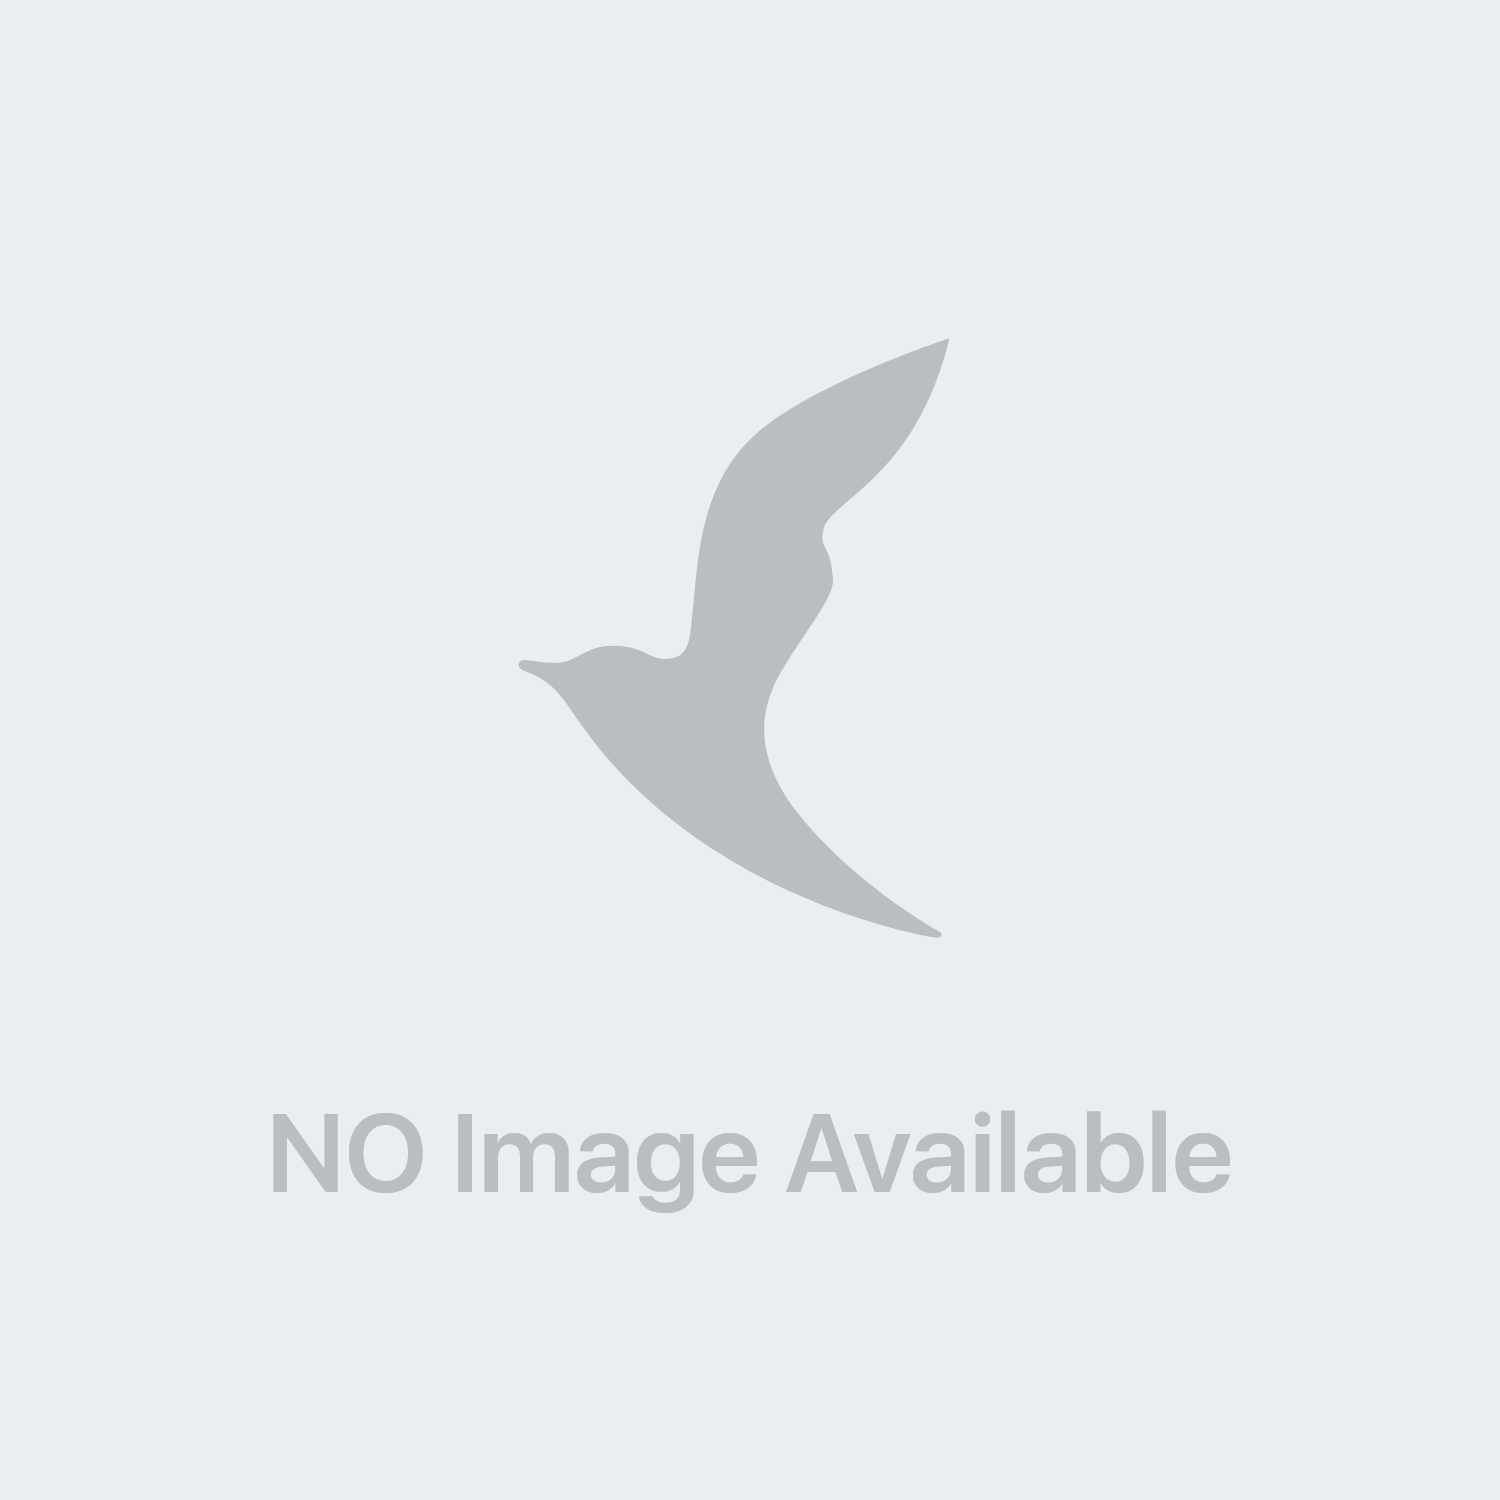 Eucerin pH5 Crema Idratante PROMO FAMILY PACK 2x75 ml